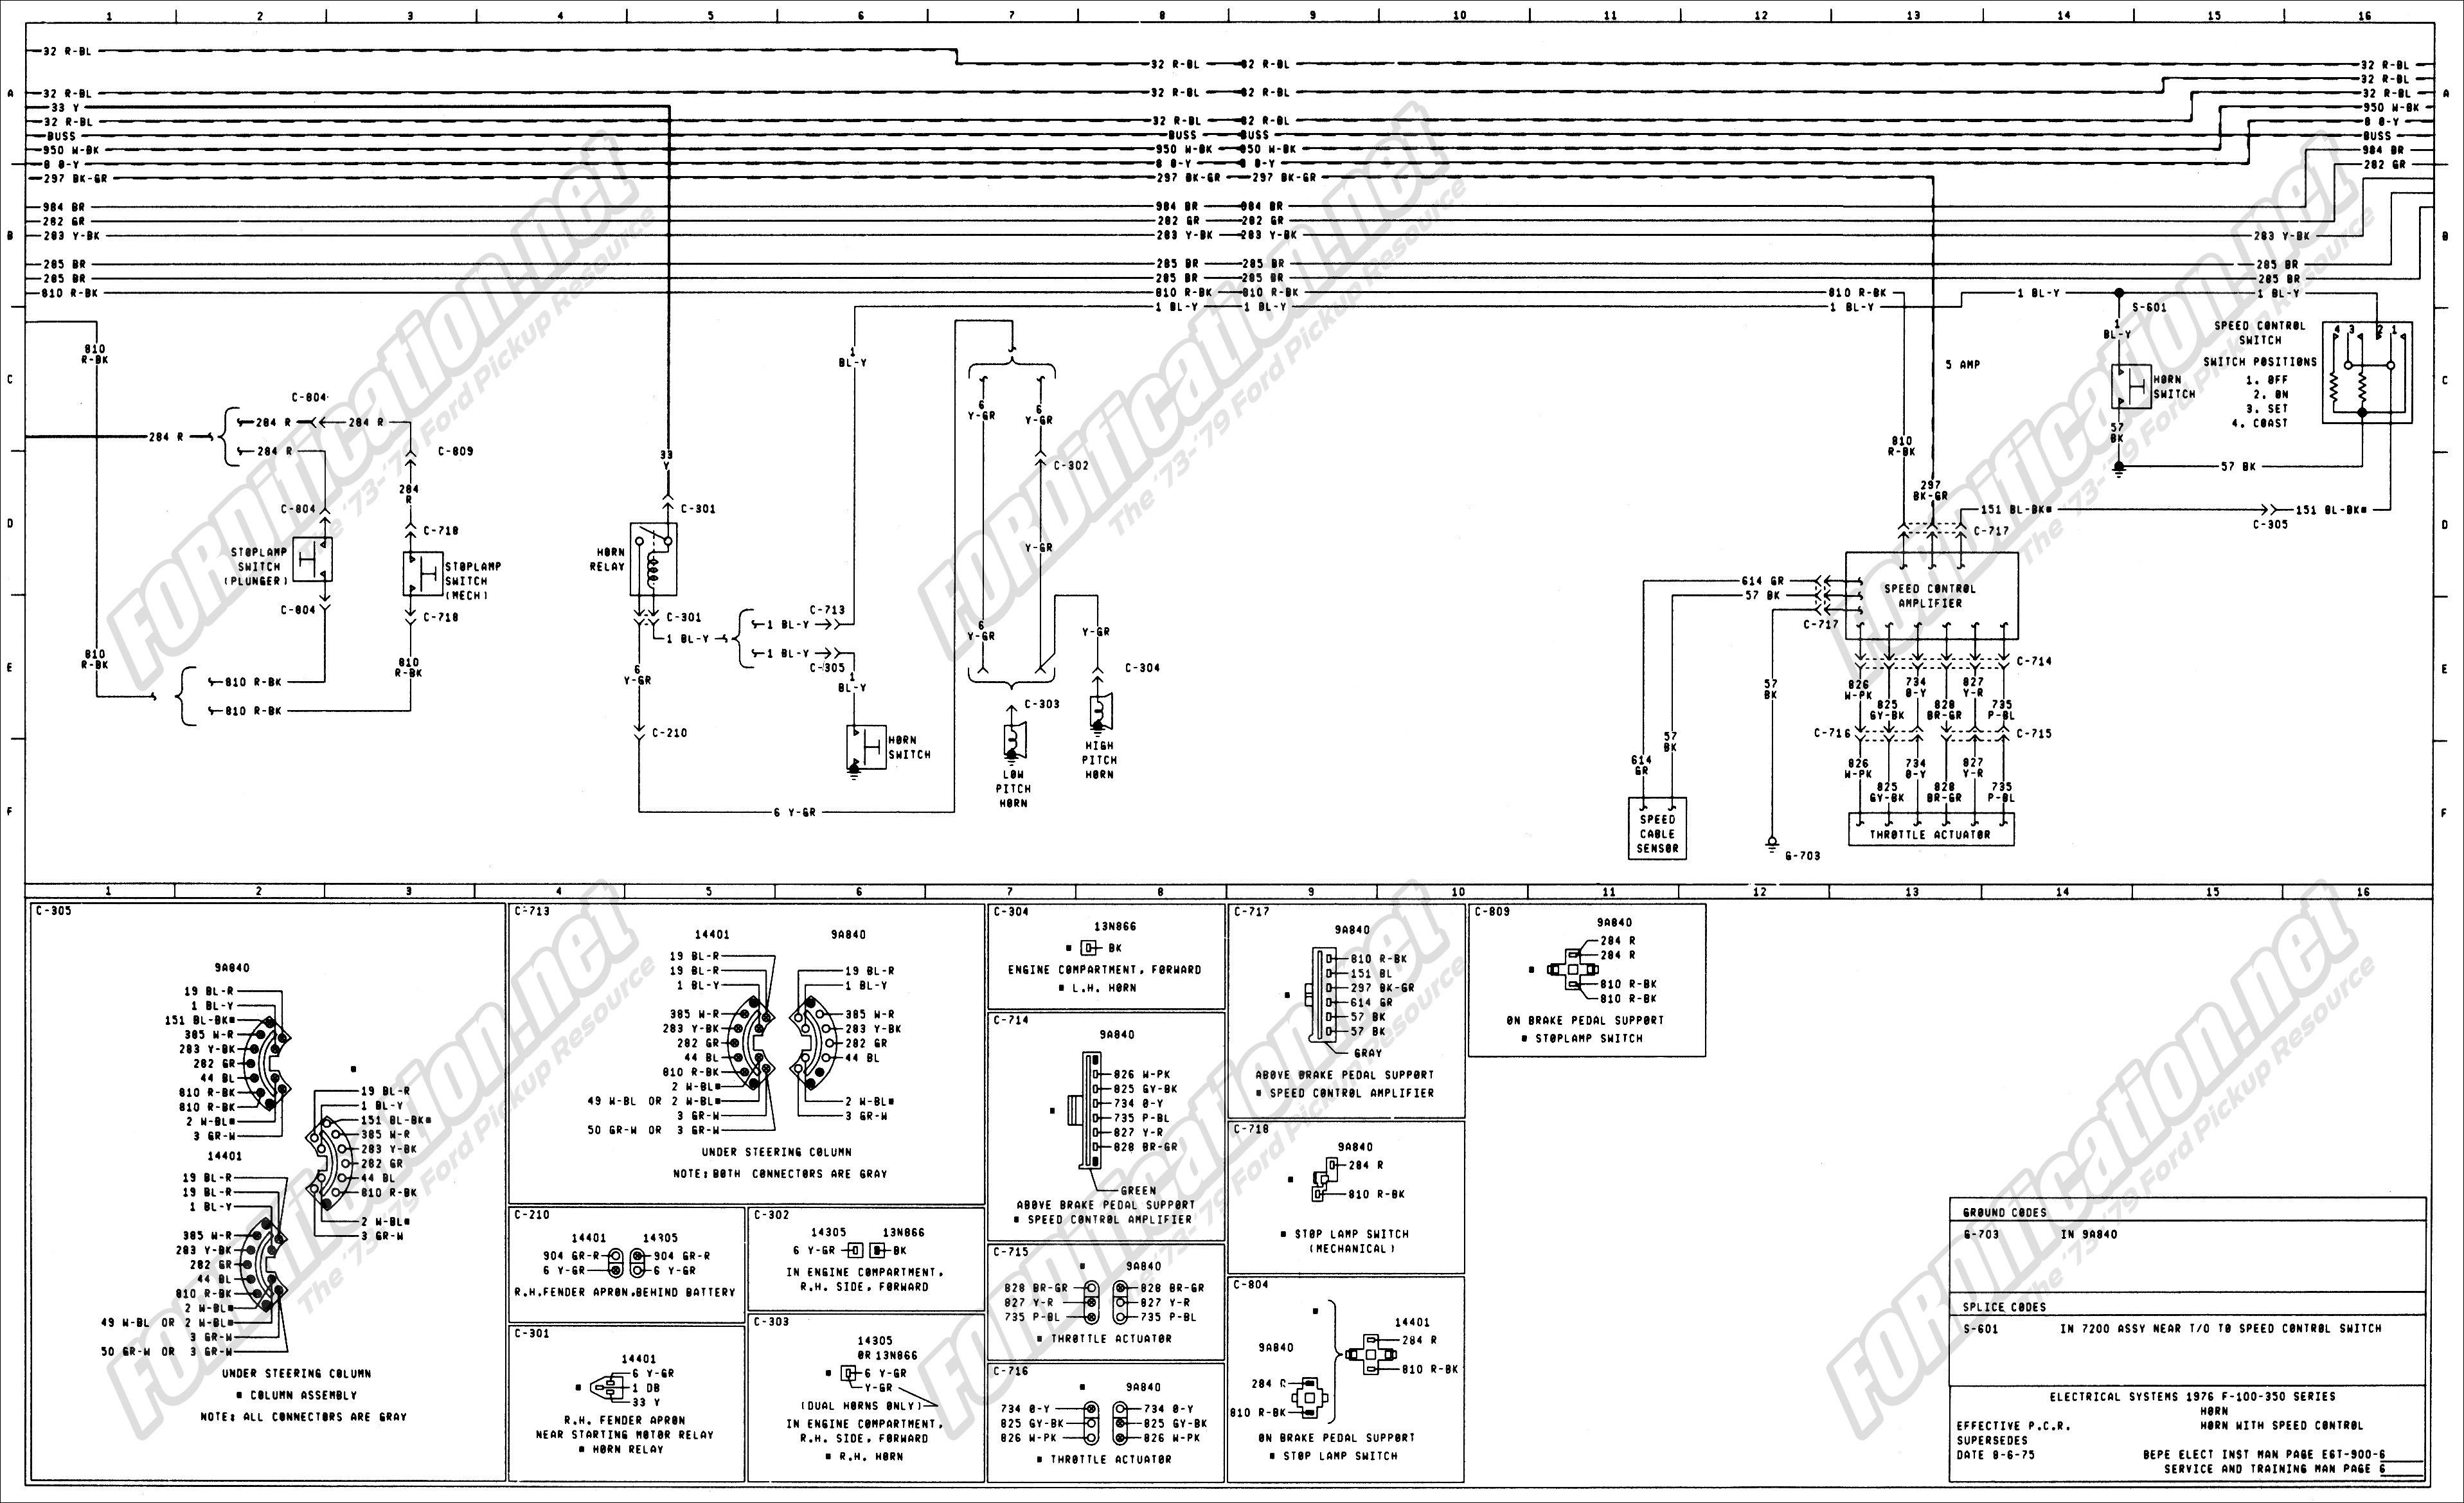 2000 Ford F350 Tail Light Wiring Diagram In 2020 Ford F150 Ford F650 Trailer Wiring Diagram